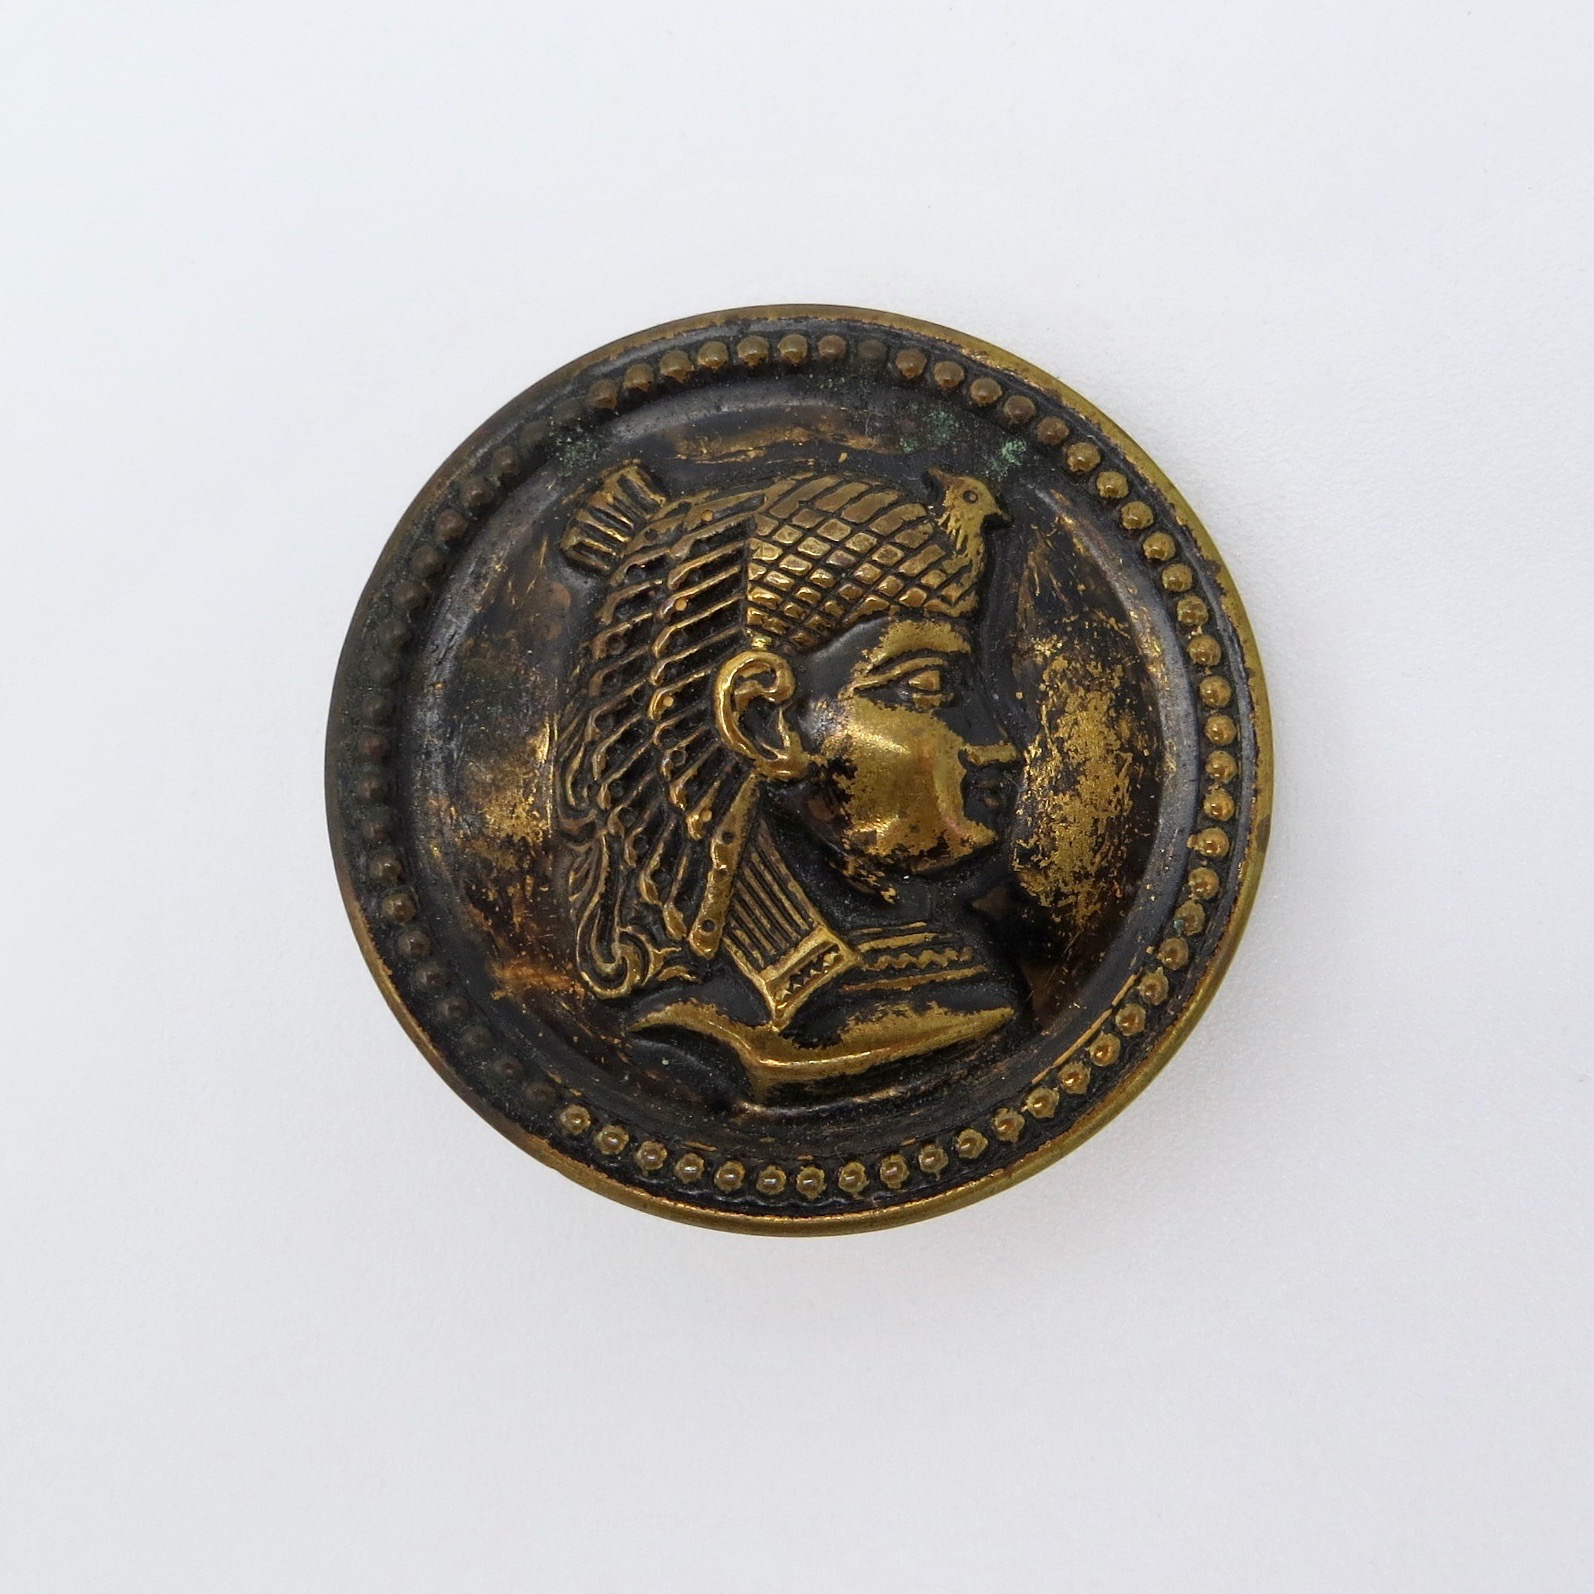 Victorian Cleopatra Button